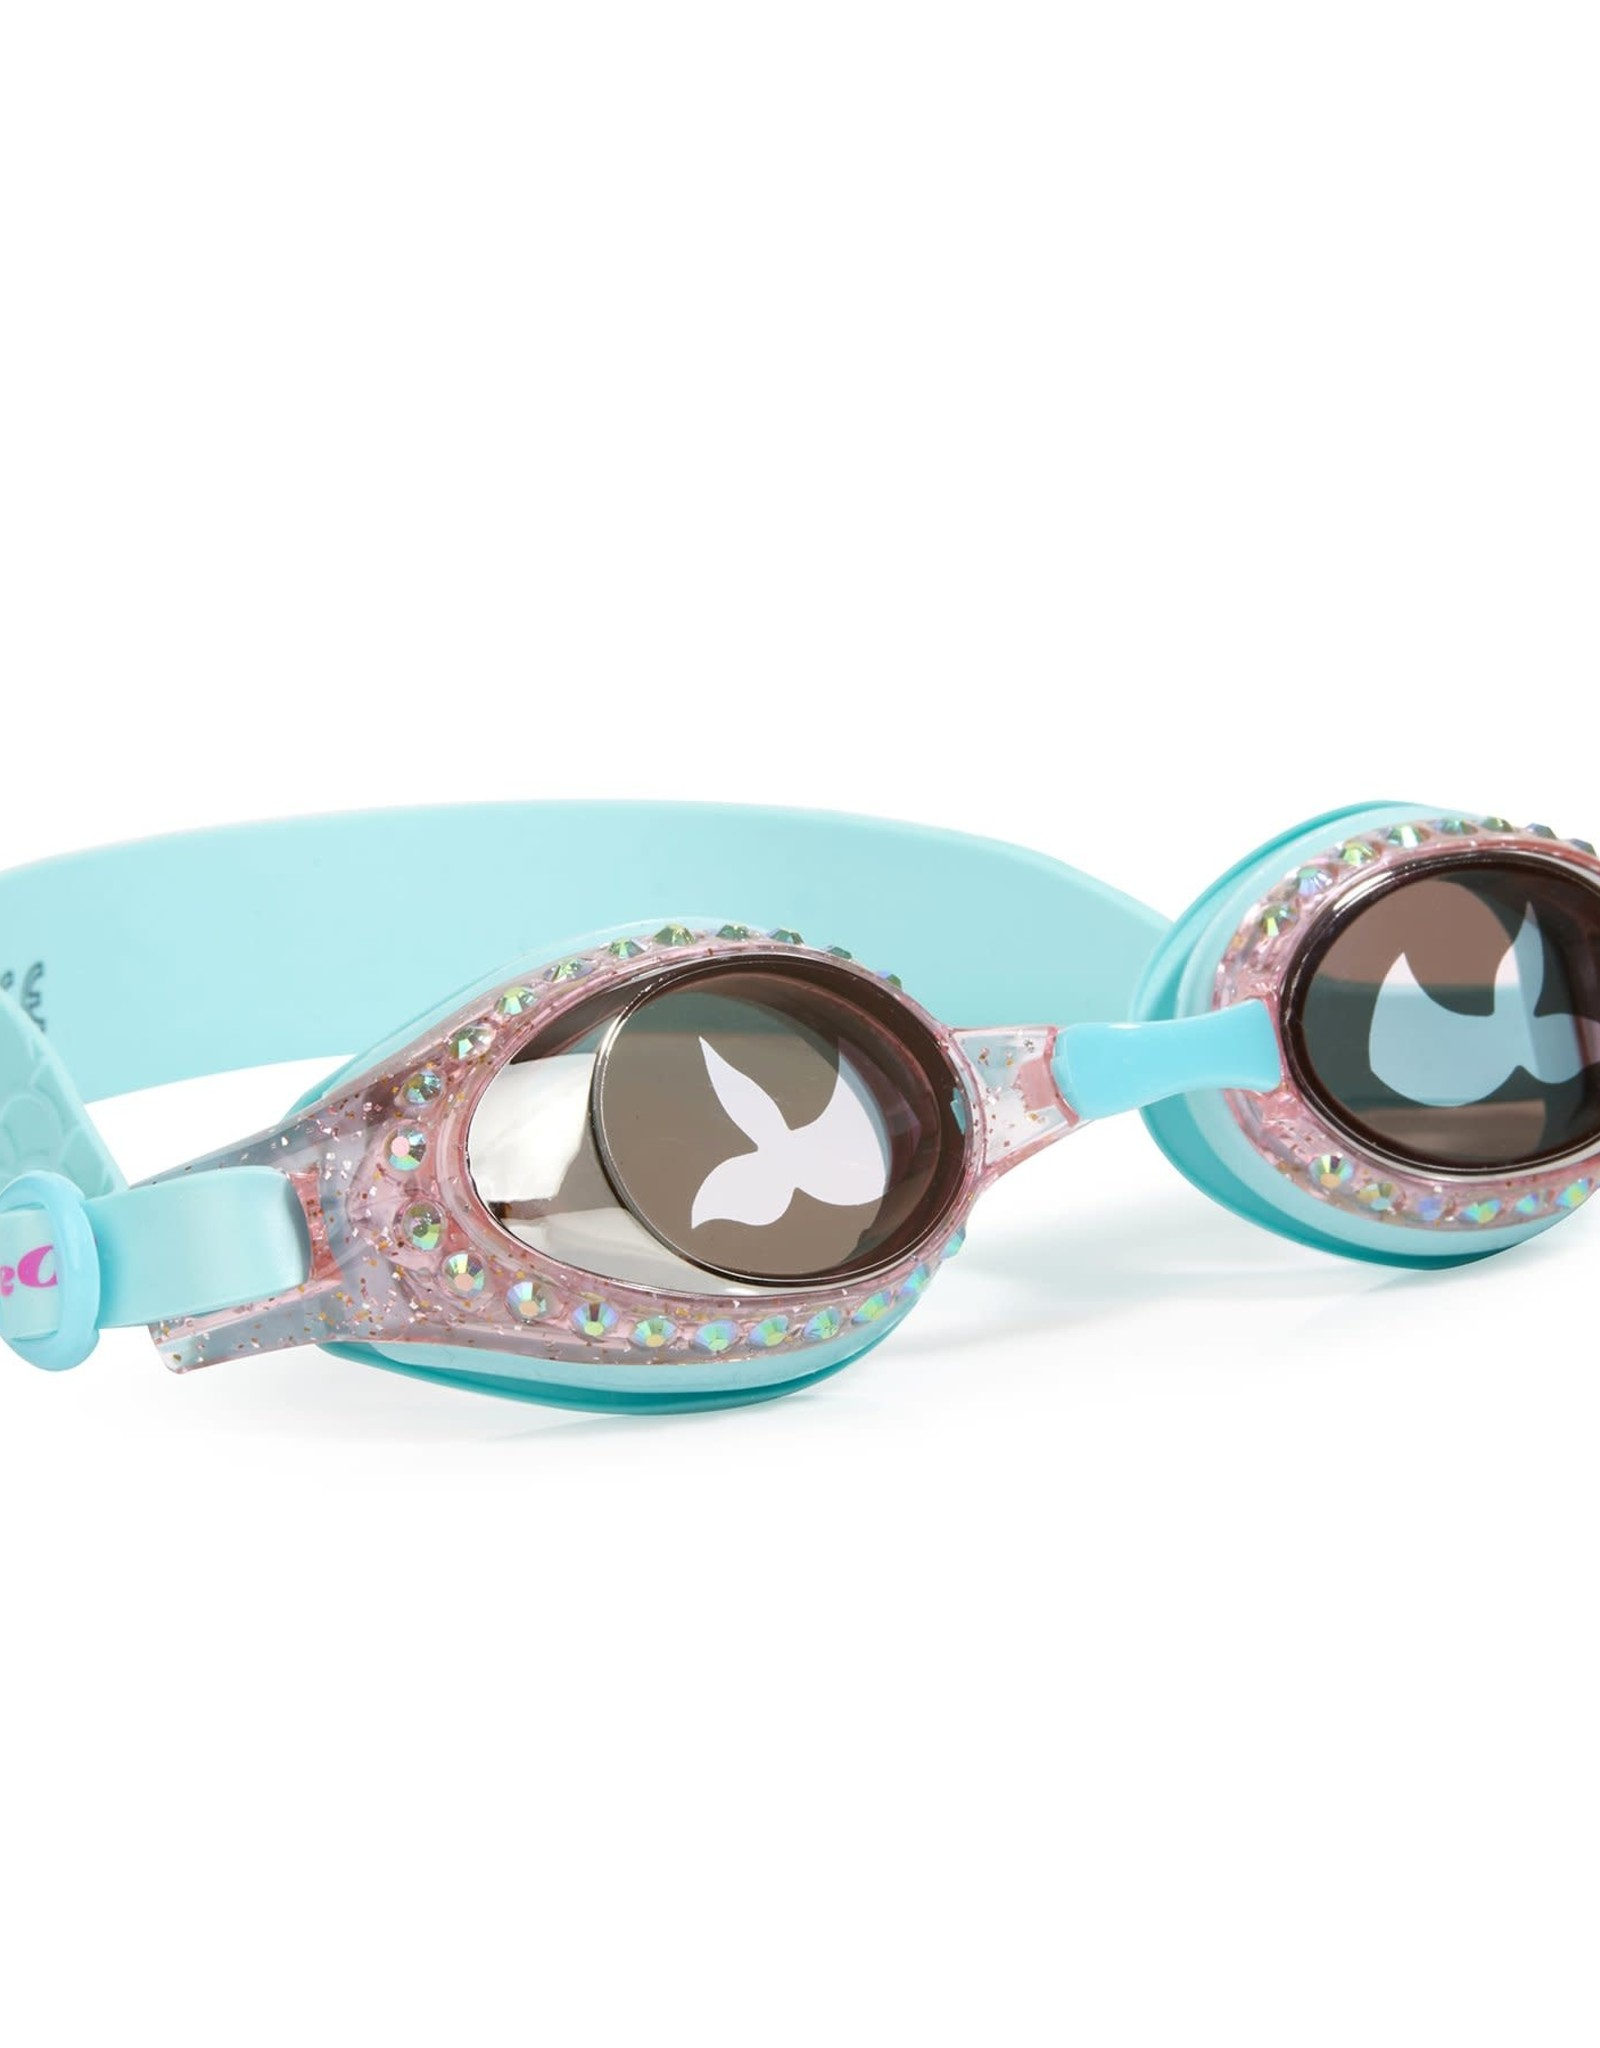 Bling2O Mermaid Swim Goggles blue sushi